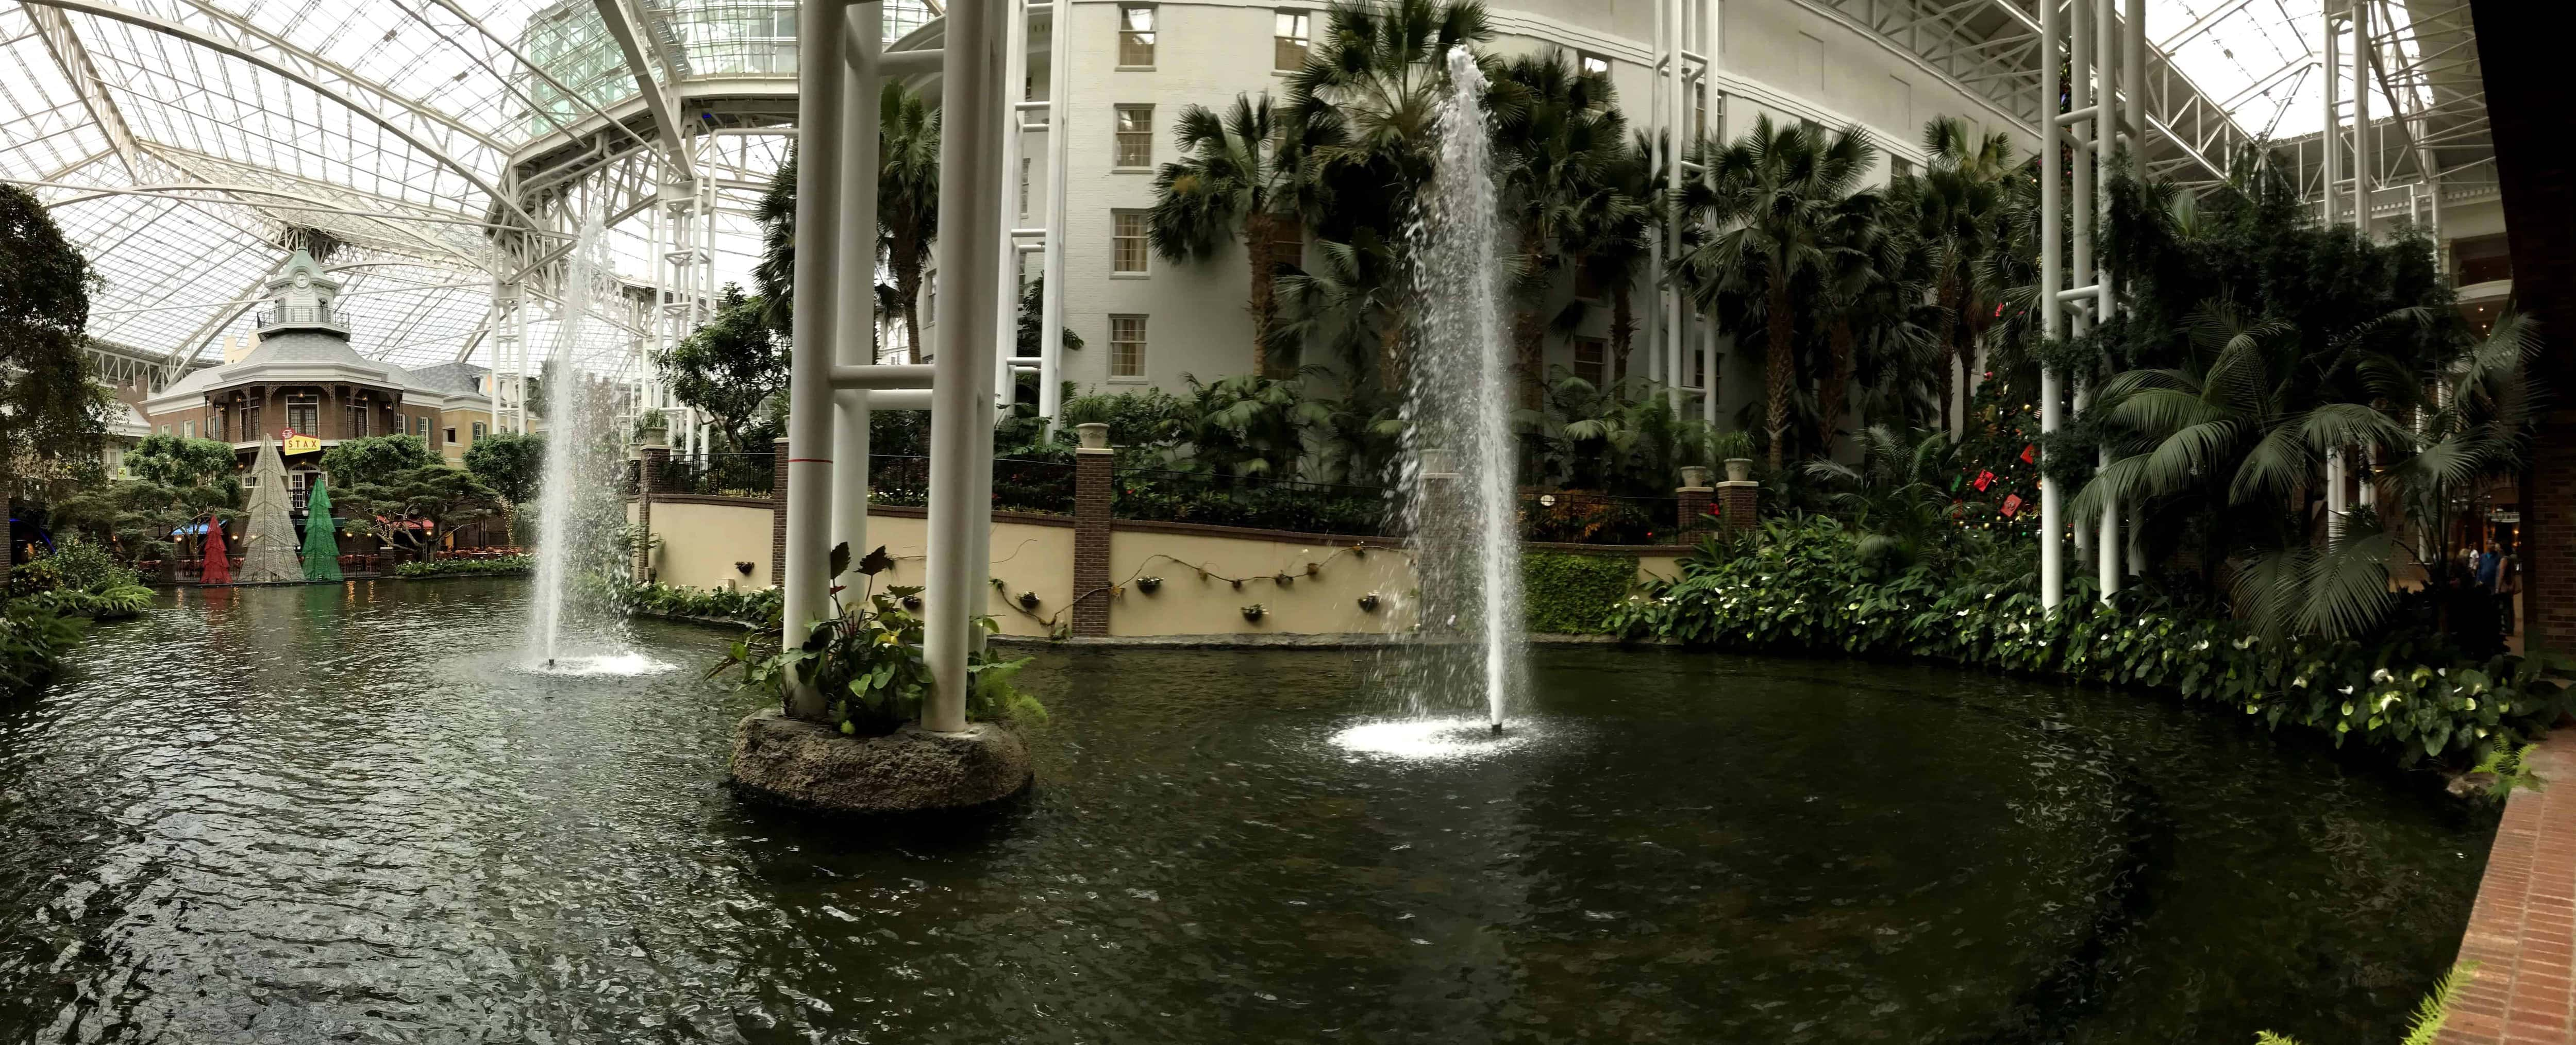 water fountains inside Gaylord Opryland Resort at Christmas time